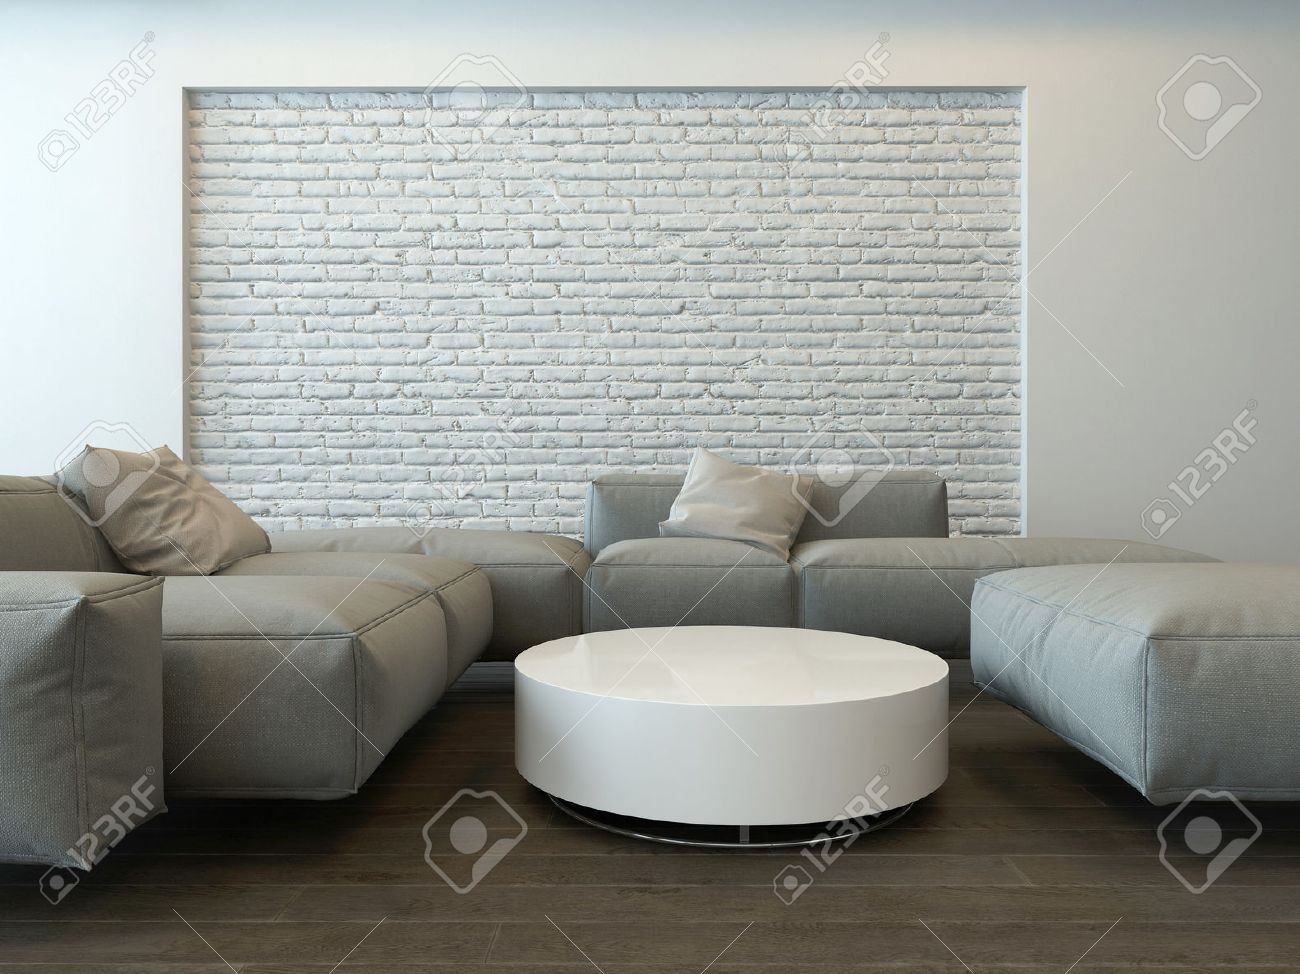 Tranquil Modern Grey Living Room Interior With Comfortable Corner Couches A Round White Table And